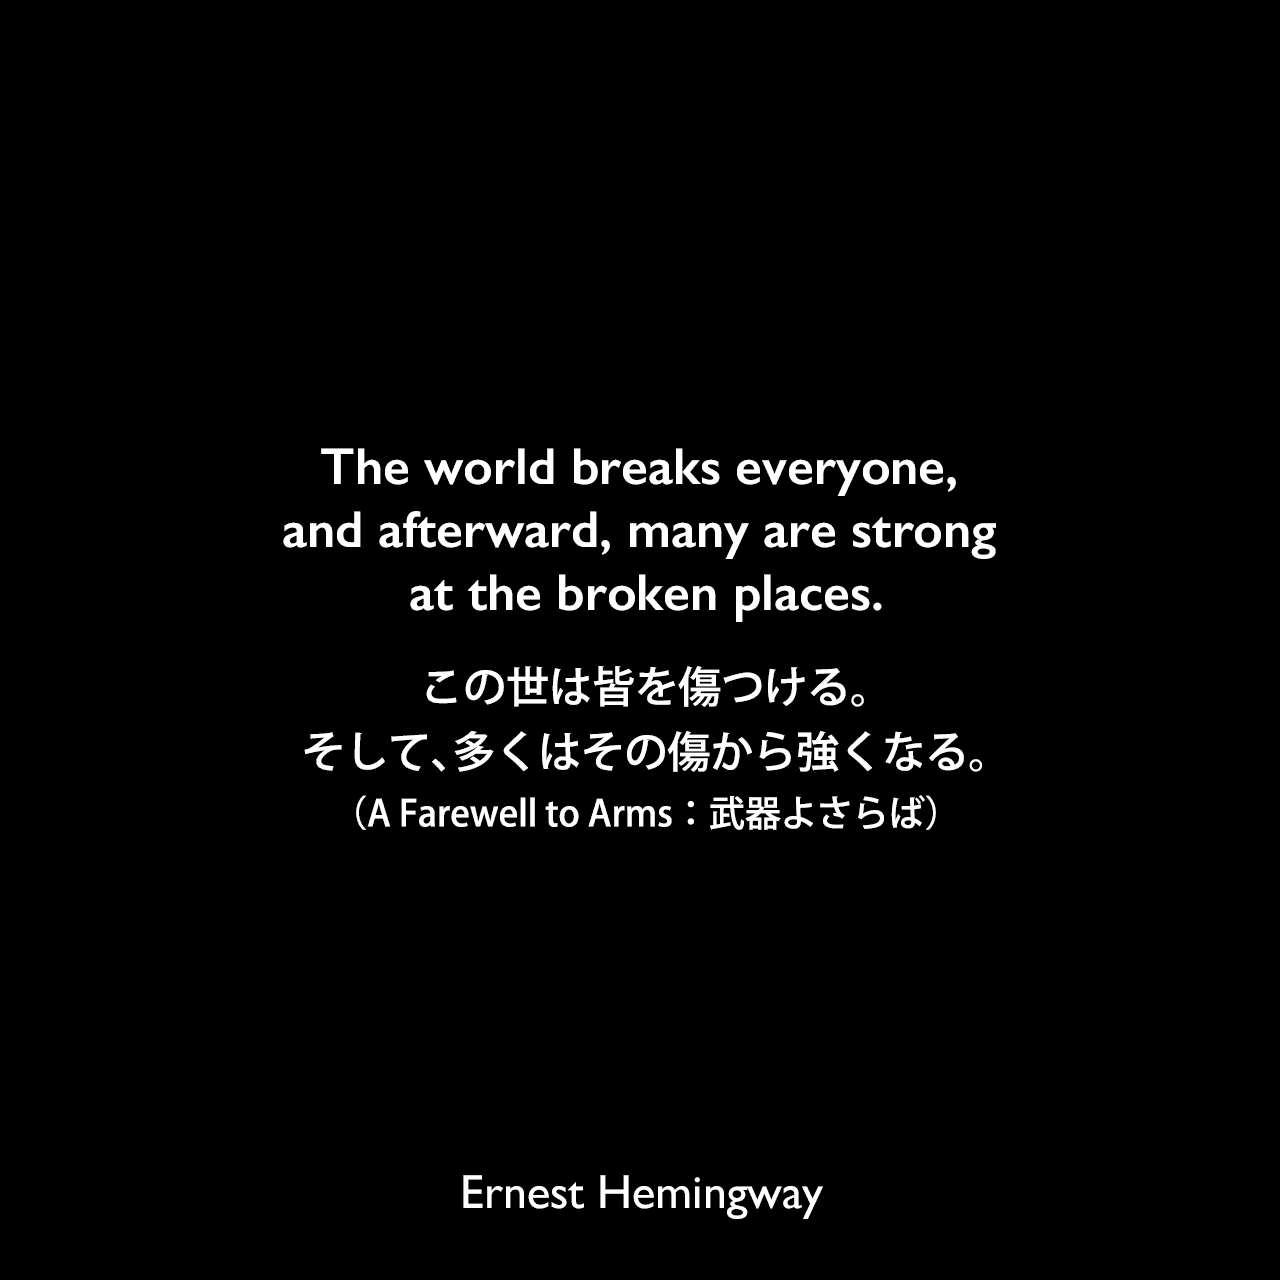 The world breaks everyone, and afterward, many are strong at the broken places.この世は皆を傷つける。そして、多くはその傷から強くなる。(A Farewell to Arms:武器よさらば)Ernest Hemingway